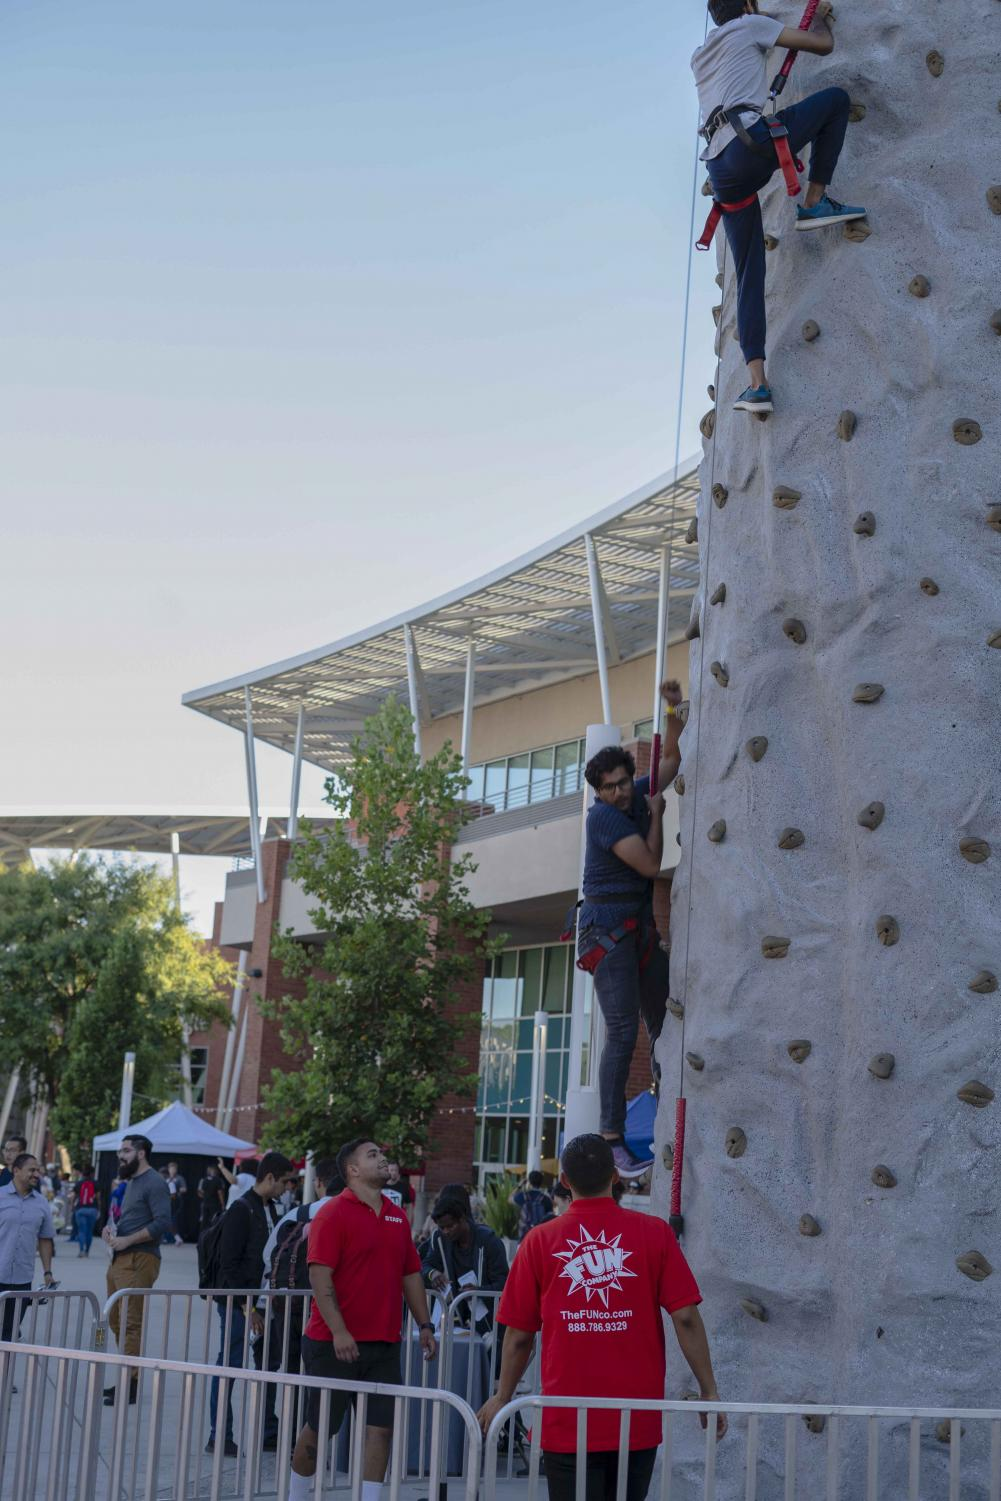 Rock+climbing+was+a+favorite+attraction+of+the+evening+during+the+celebration+of+the+45th+anniversary+of+the+University+Student-Union+at+Cal+State+LA+last+Thursday.